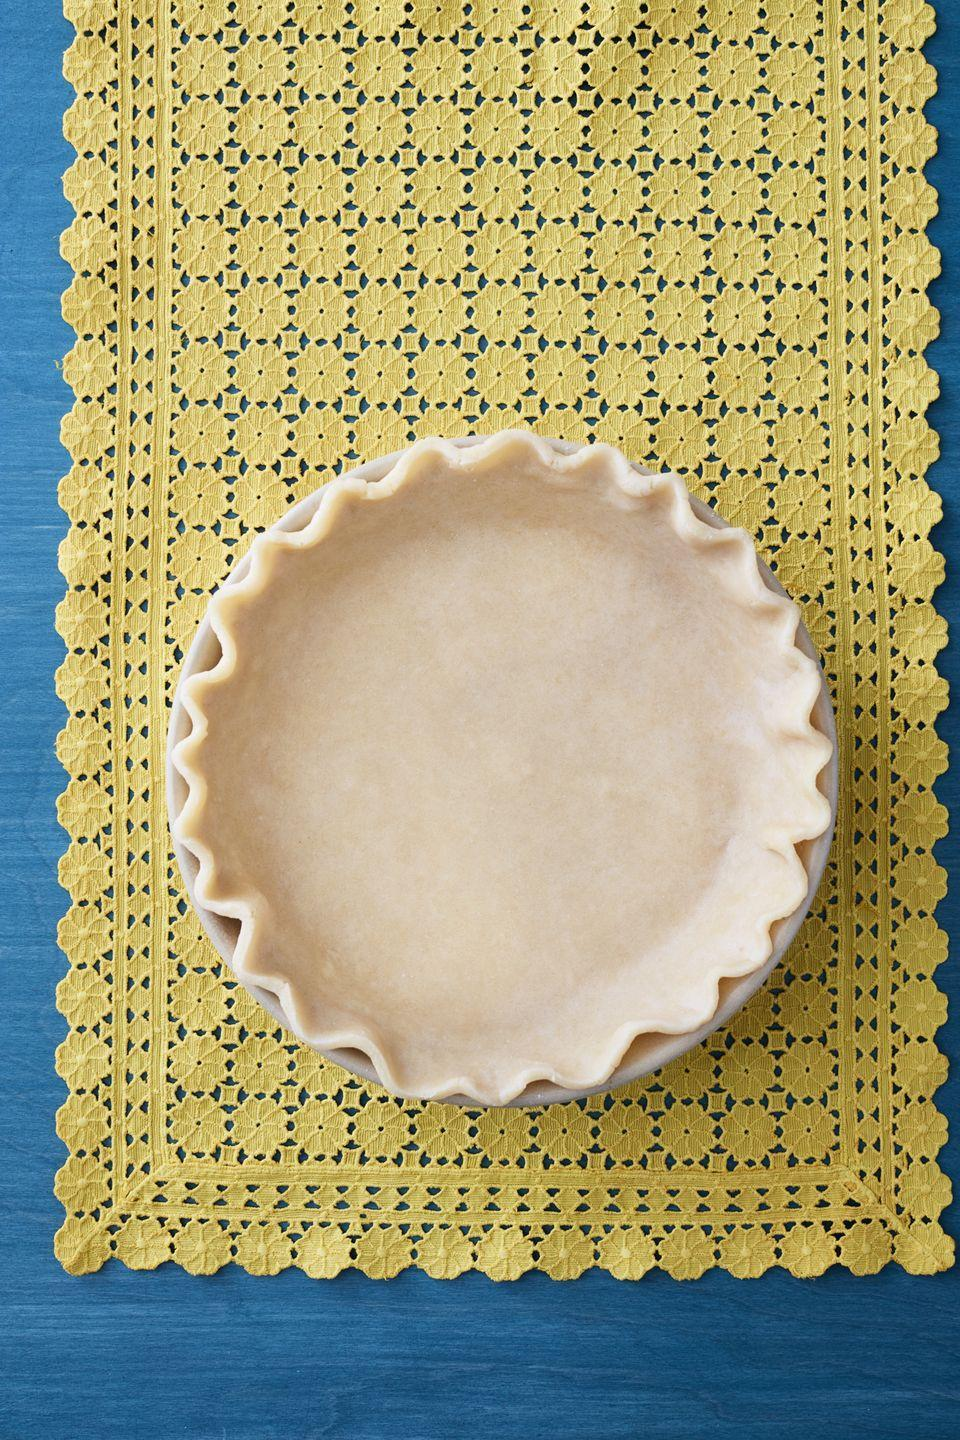 """<p>A perfect pie starts with the perfect crust. And this one is absolutely, positively a keeper.<br> </p><p><a class=""""link rapid-noclick-resp"""" href=""""https://www.thepioneerwoman.com/food-cooking/recipes/a11734/perfect-pie-crust-recipe/"""" rel=""""nofollow noopener"""" target=""""_blank"""" data-ylk=""""slk:Get the Recipe!"""">Get the Recipe!</a></p>"""